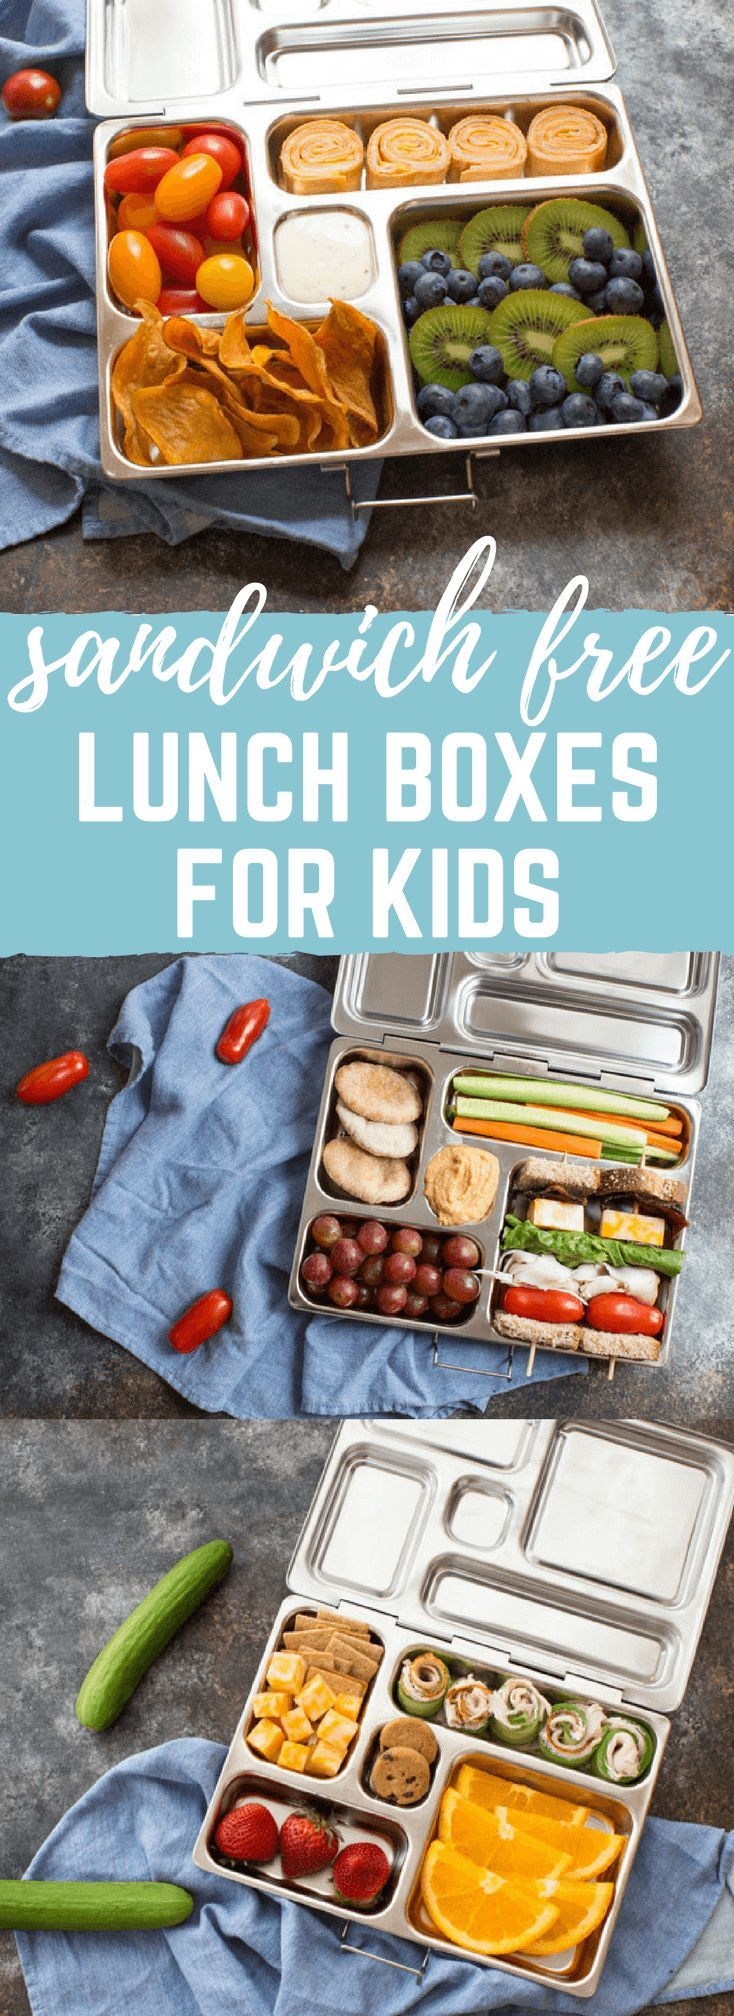 Sandwich free kid friendly lunch box ideas the whole family will love. These tasty bento style lunch boxes are balanced for nutrition, color, and variety the kids will love them. @villagefarms #kidsinthekitchen #kidseatright #kitchenkids